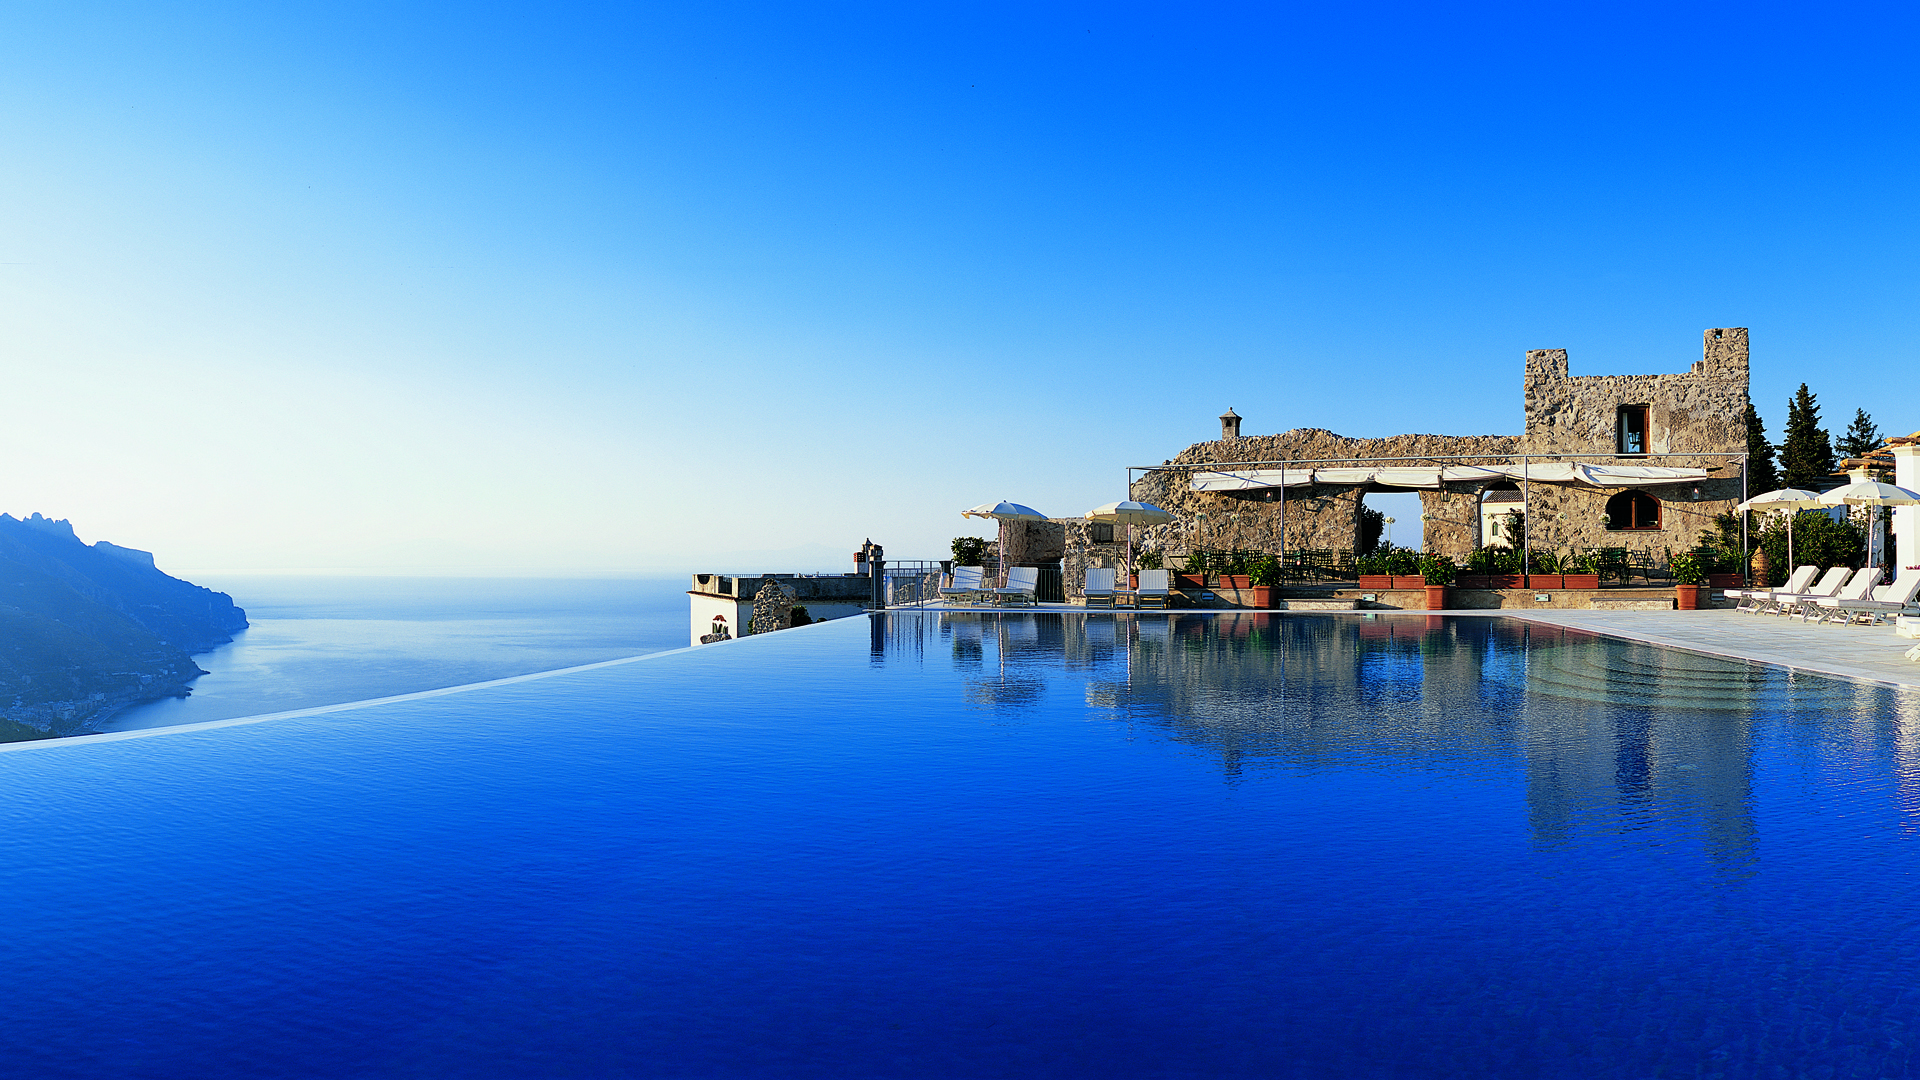 Belmond Hotel Caruso Ravello In Italy From Carrier